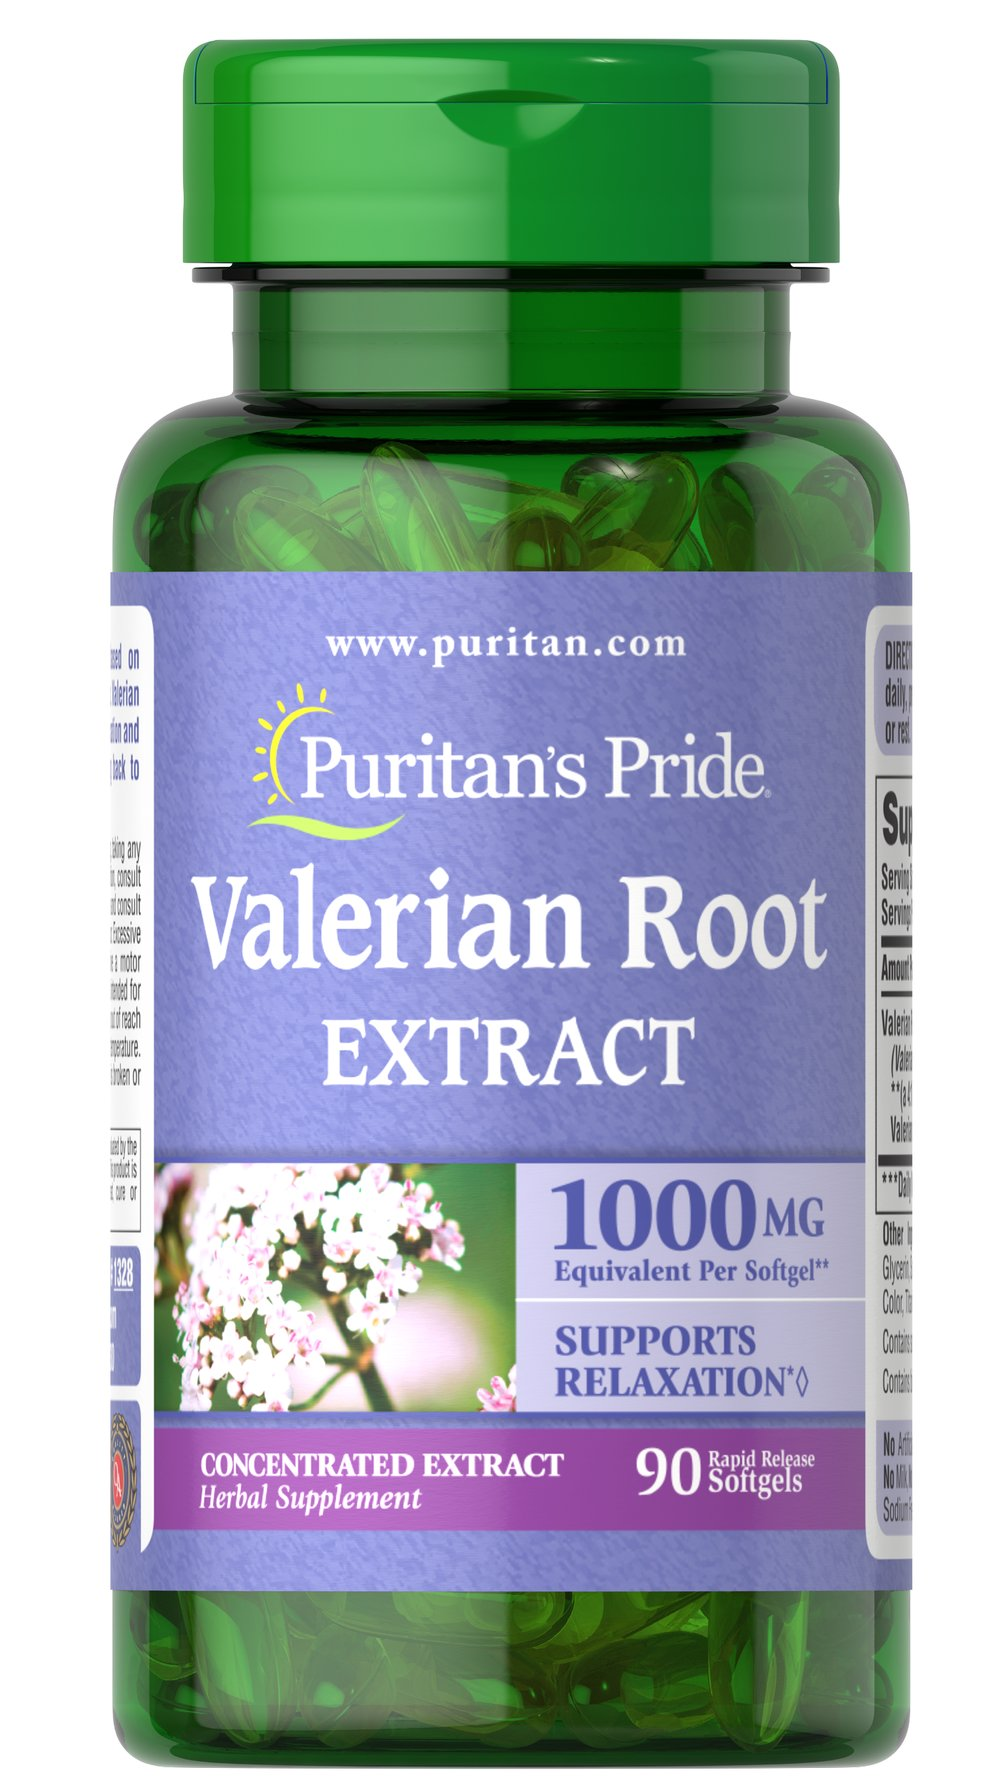 Valerian Root 1000 mg <p>Supports Relaxation**</p><p>Valerian works in harmony with your natural cycle to help promote relaxation, so you can leave your busy day behind and get the tranquil rest you deserve.**</p> 90 Softgels 1000 mg $14.99